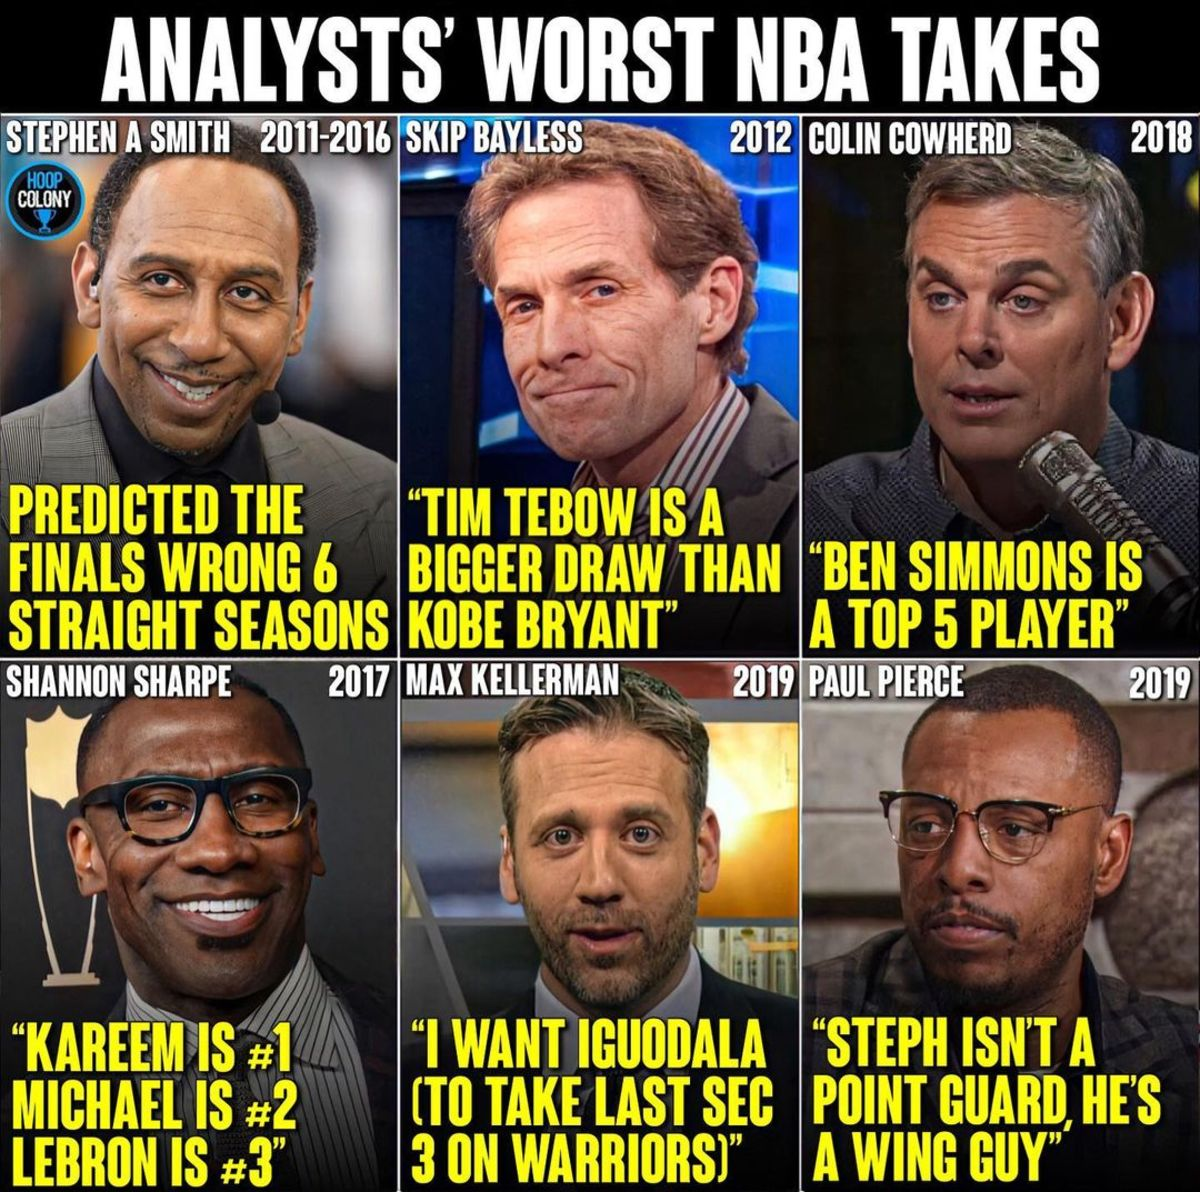 NBA Analysts Worst Takes Ever: 'LeBron Is 3rd Of All-Time... I Want Iguodala... Stephen Curry Isn't A Point Guard... Predicted The Finals Wrong 6 Straight Seasons'